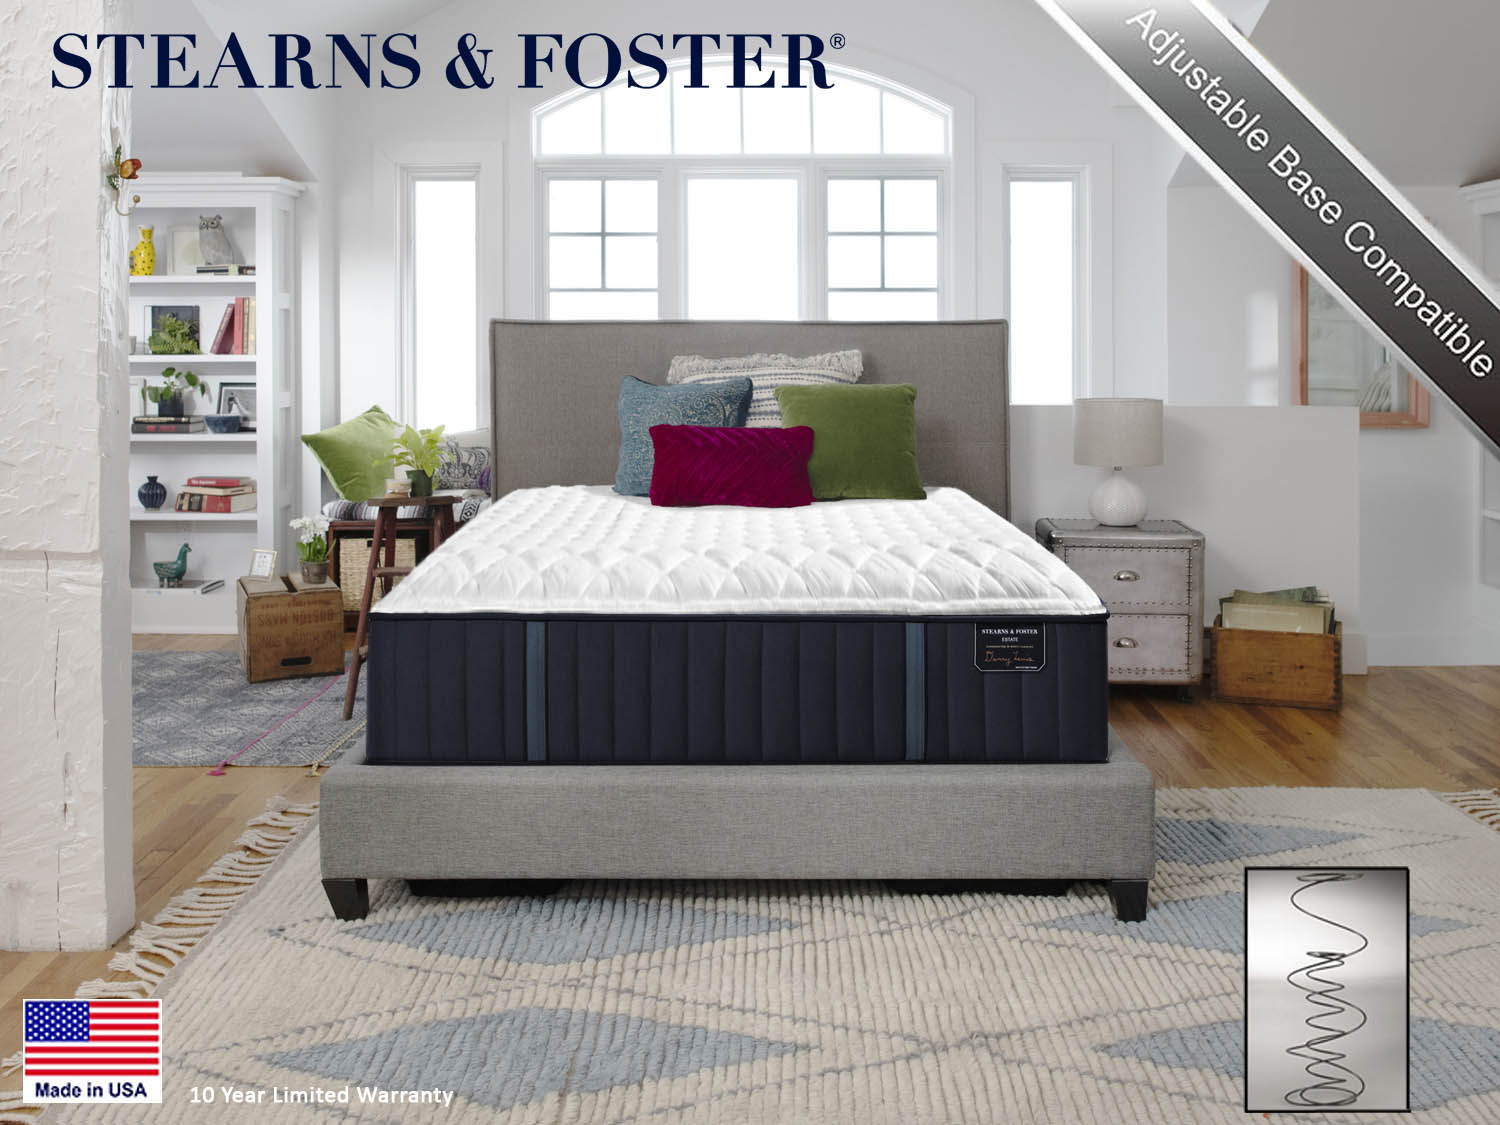 tearns & Foster, Hurston PL, Plush, Estate, Mattress, Mattresses, Sealy, Barbo's Furniture